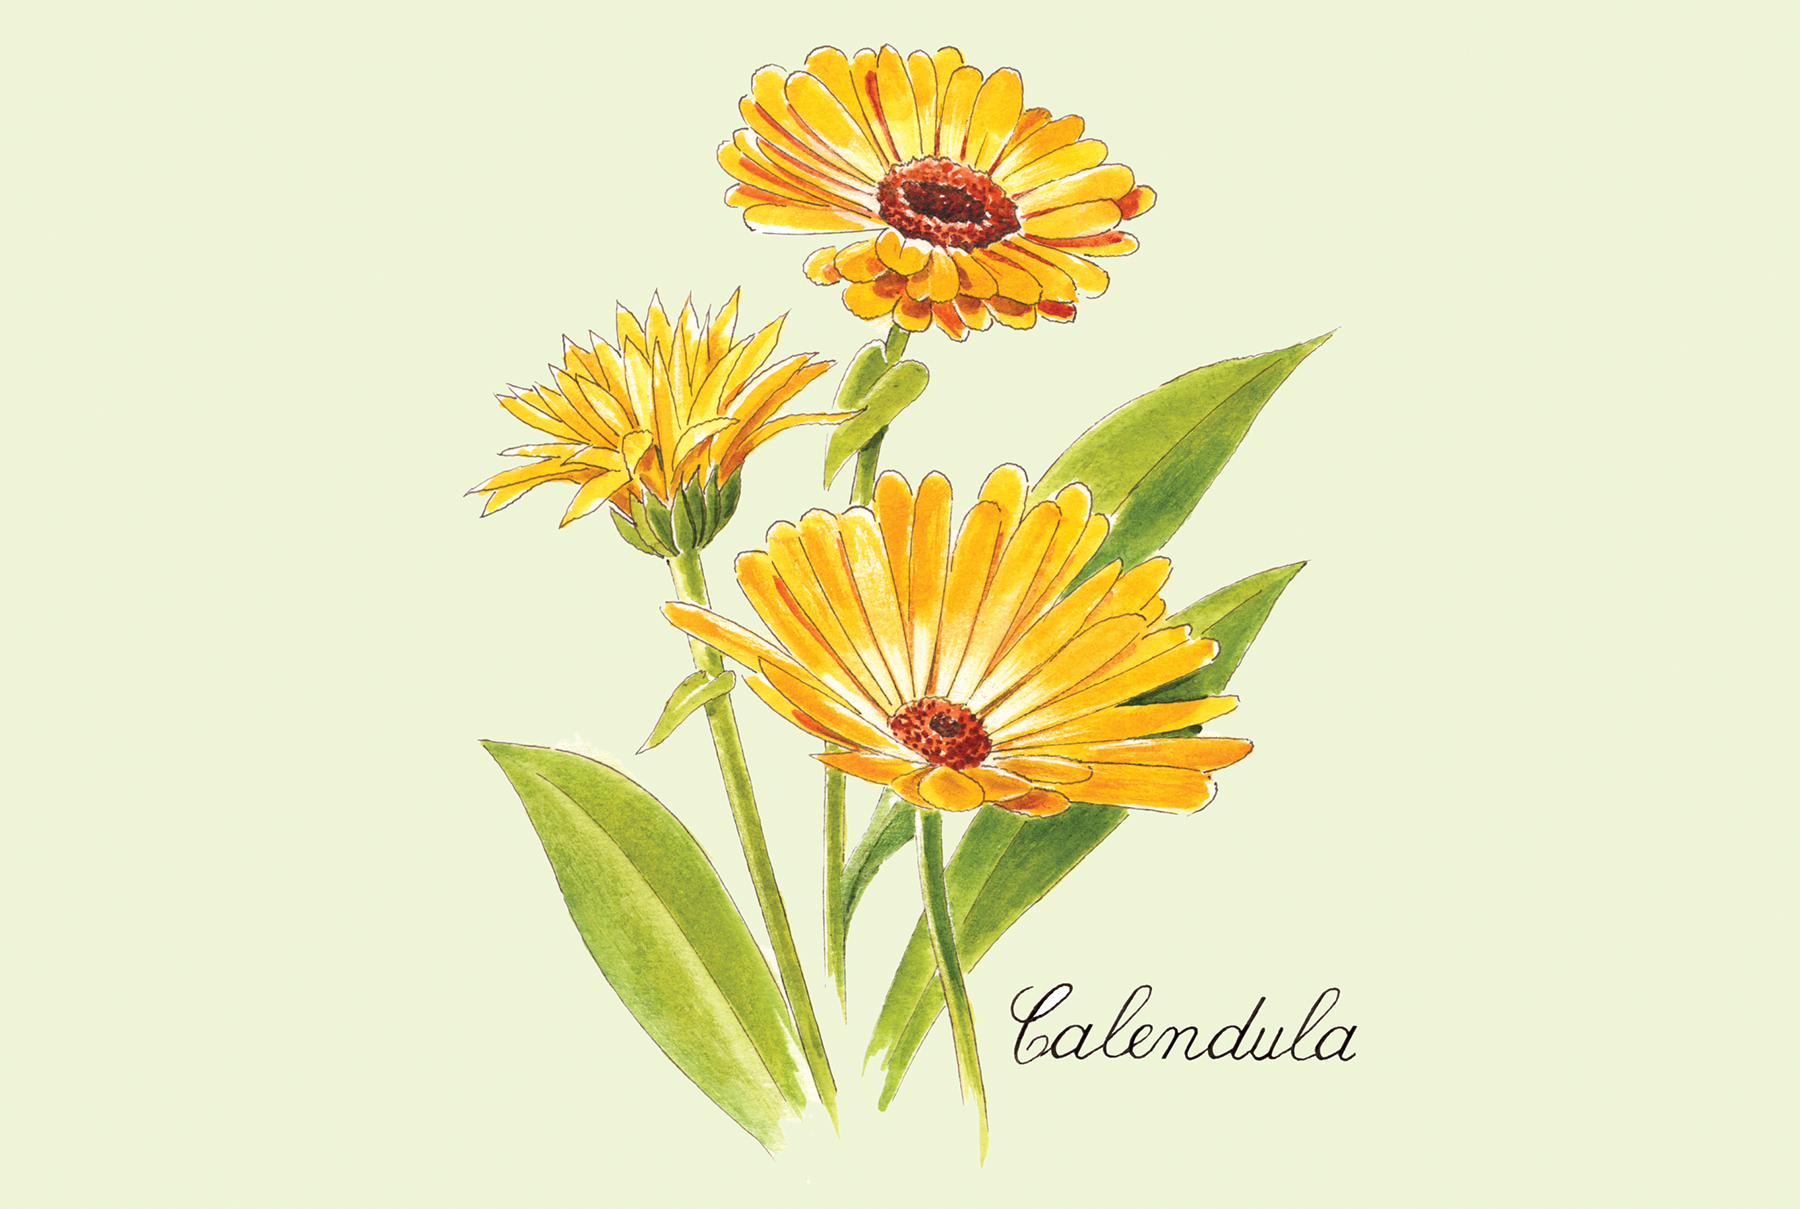 Illustration: Calendula